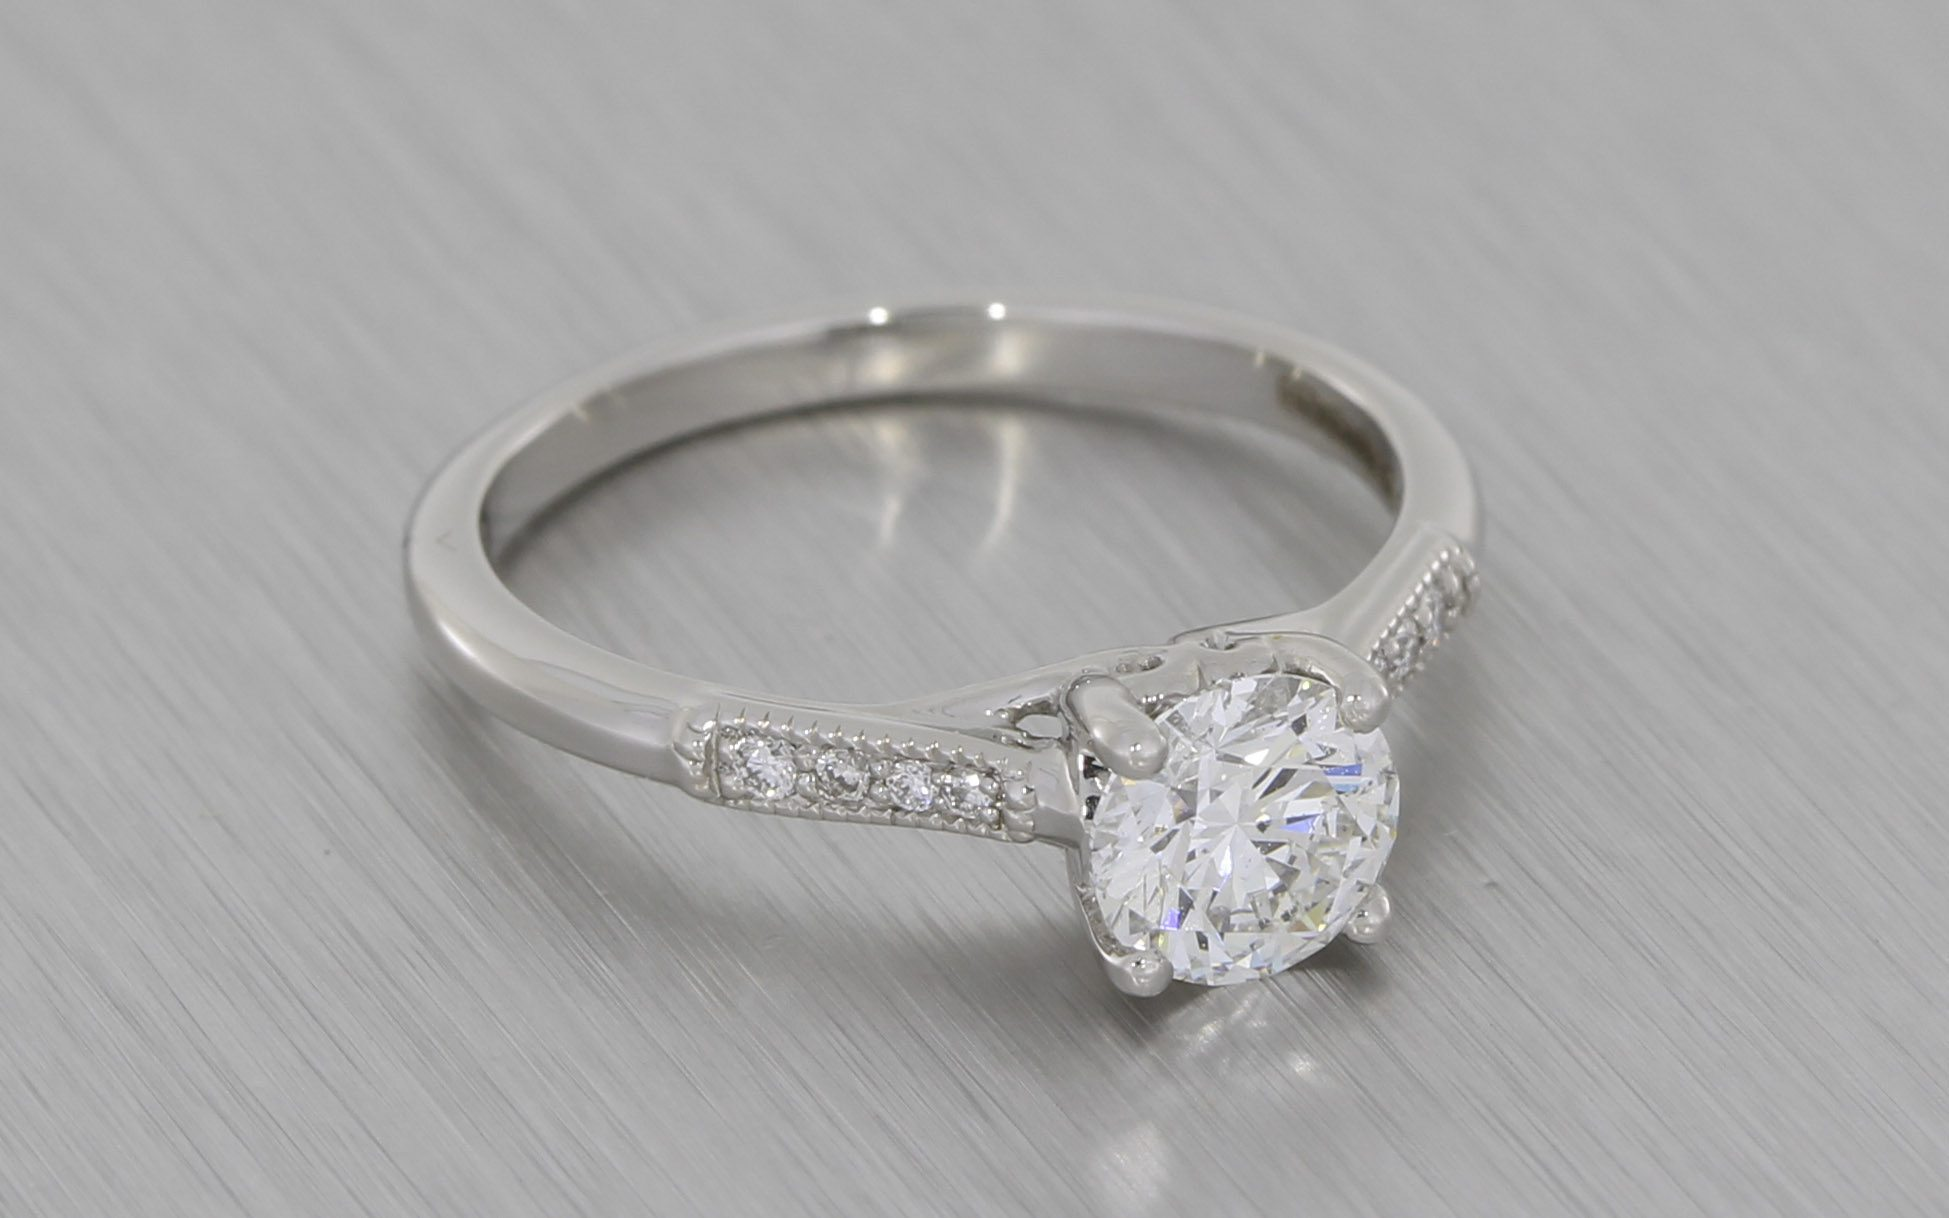 Scroll Engagement Ring  Portfolio  Durham Rose. 1.50 Engagement Rings. Infected Rings. 24 Carat Engagement Rings. Breathtaking Engagement Rings. Everyday Rings. Iced Out Wedding Rings. Antique White Engagement Rings. Sunela Rings